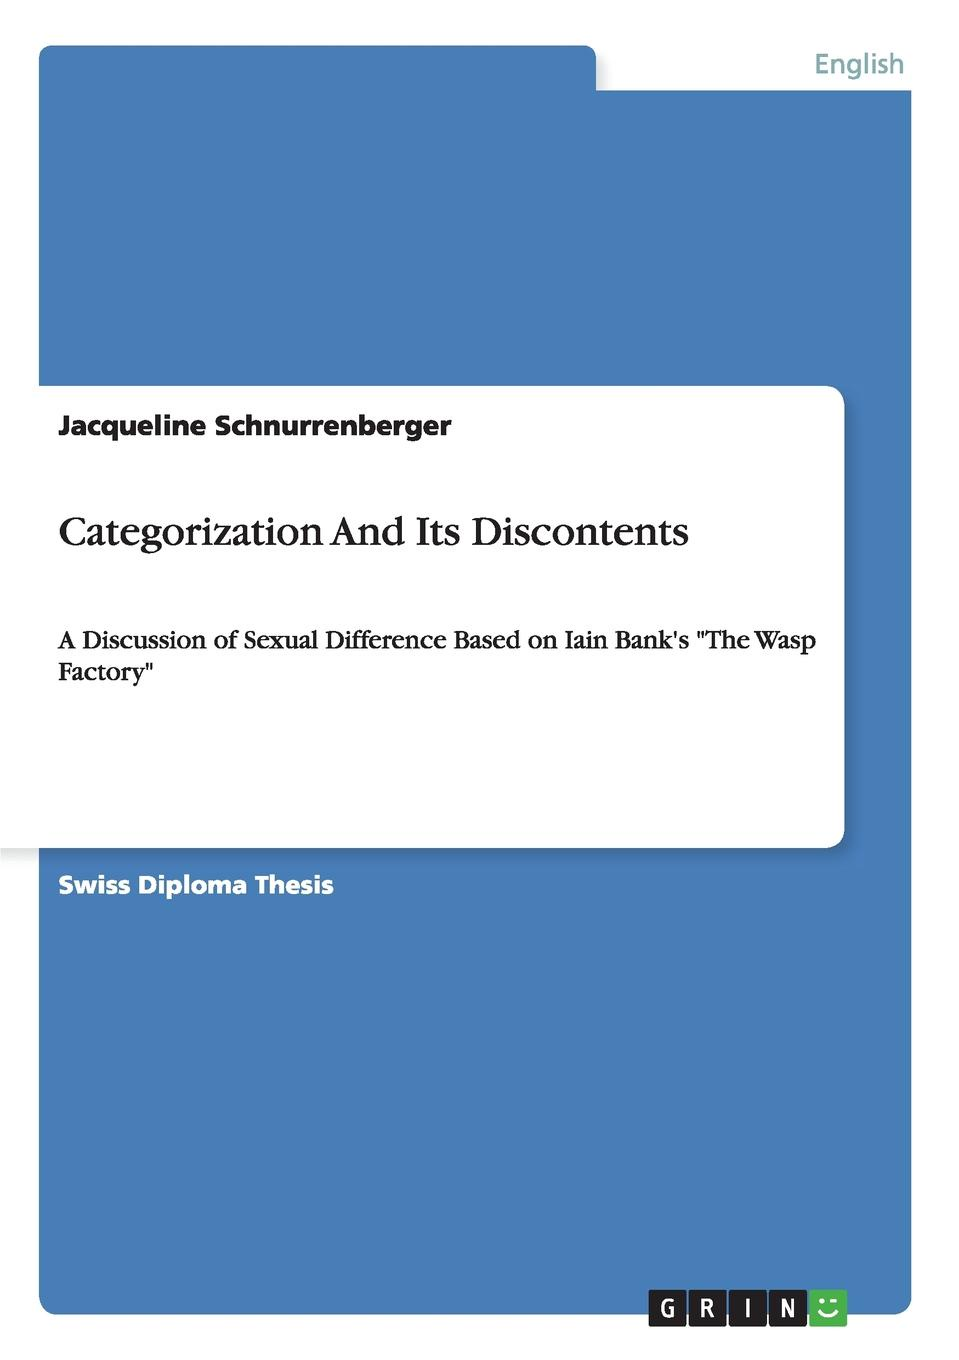 Jacqueline Schnurrenberger Categorization And Its Discontents banks i the wasp factory